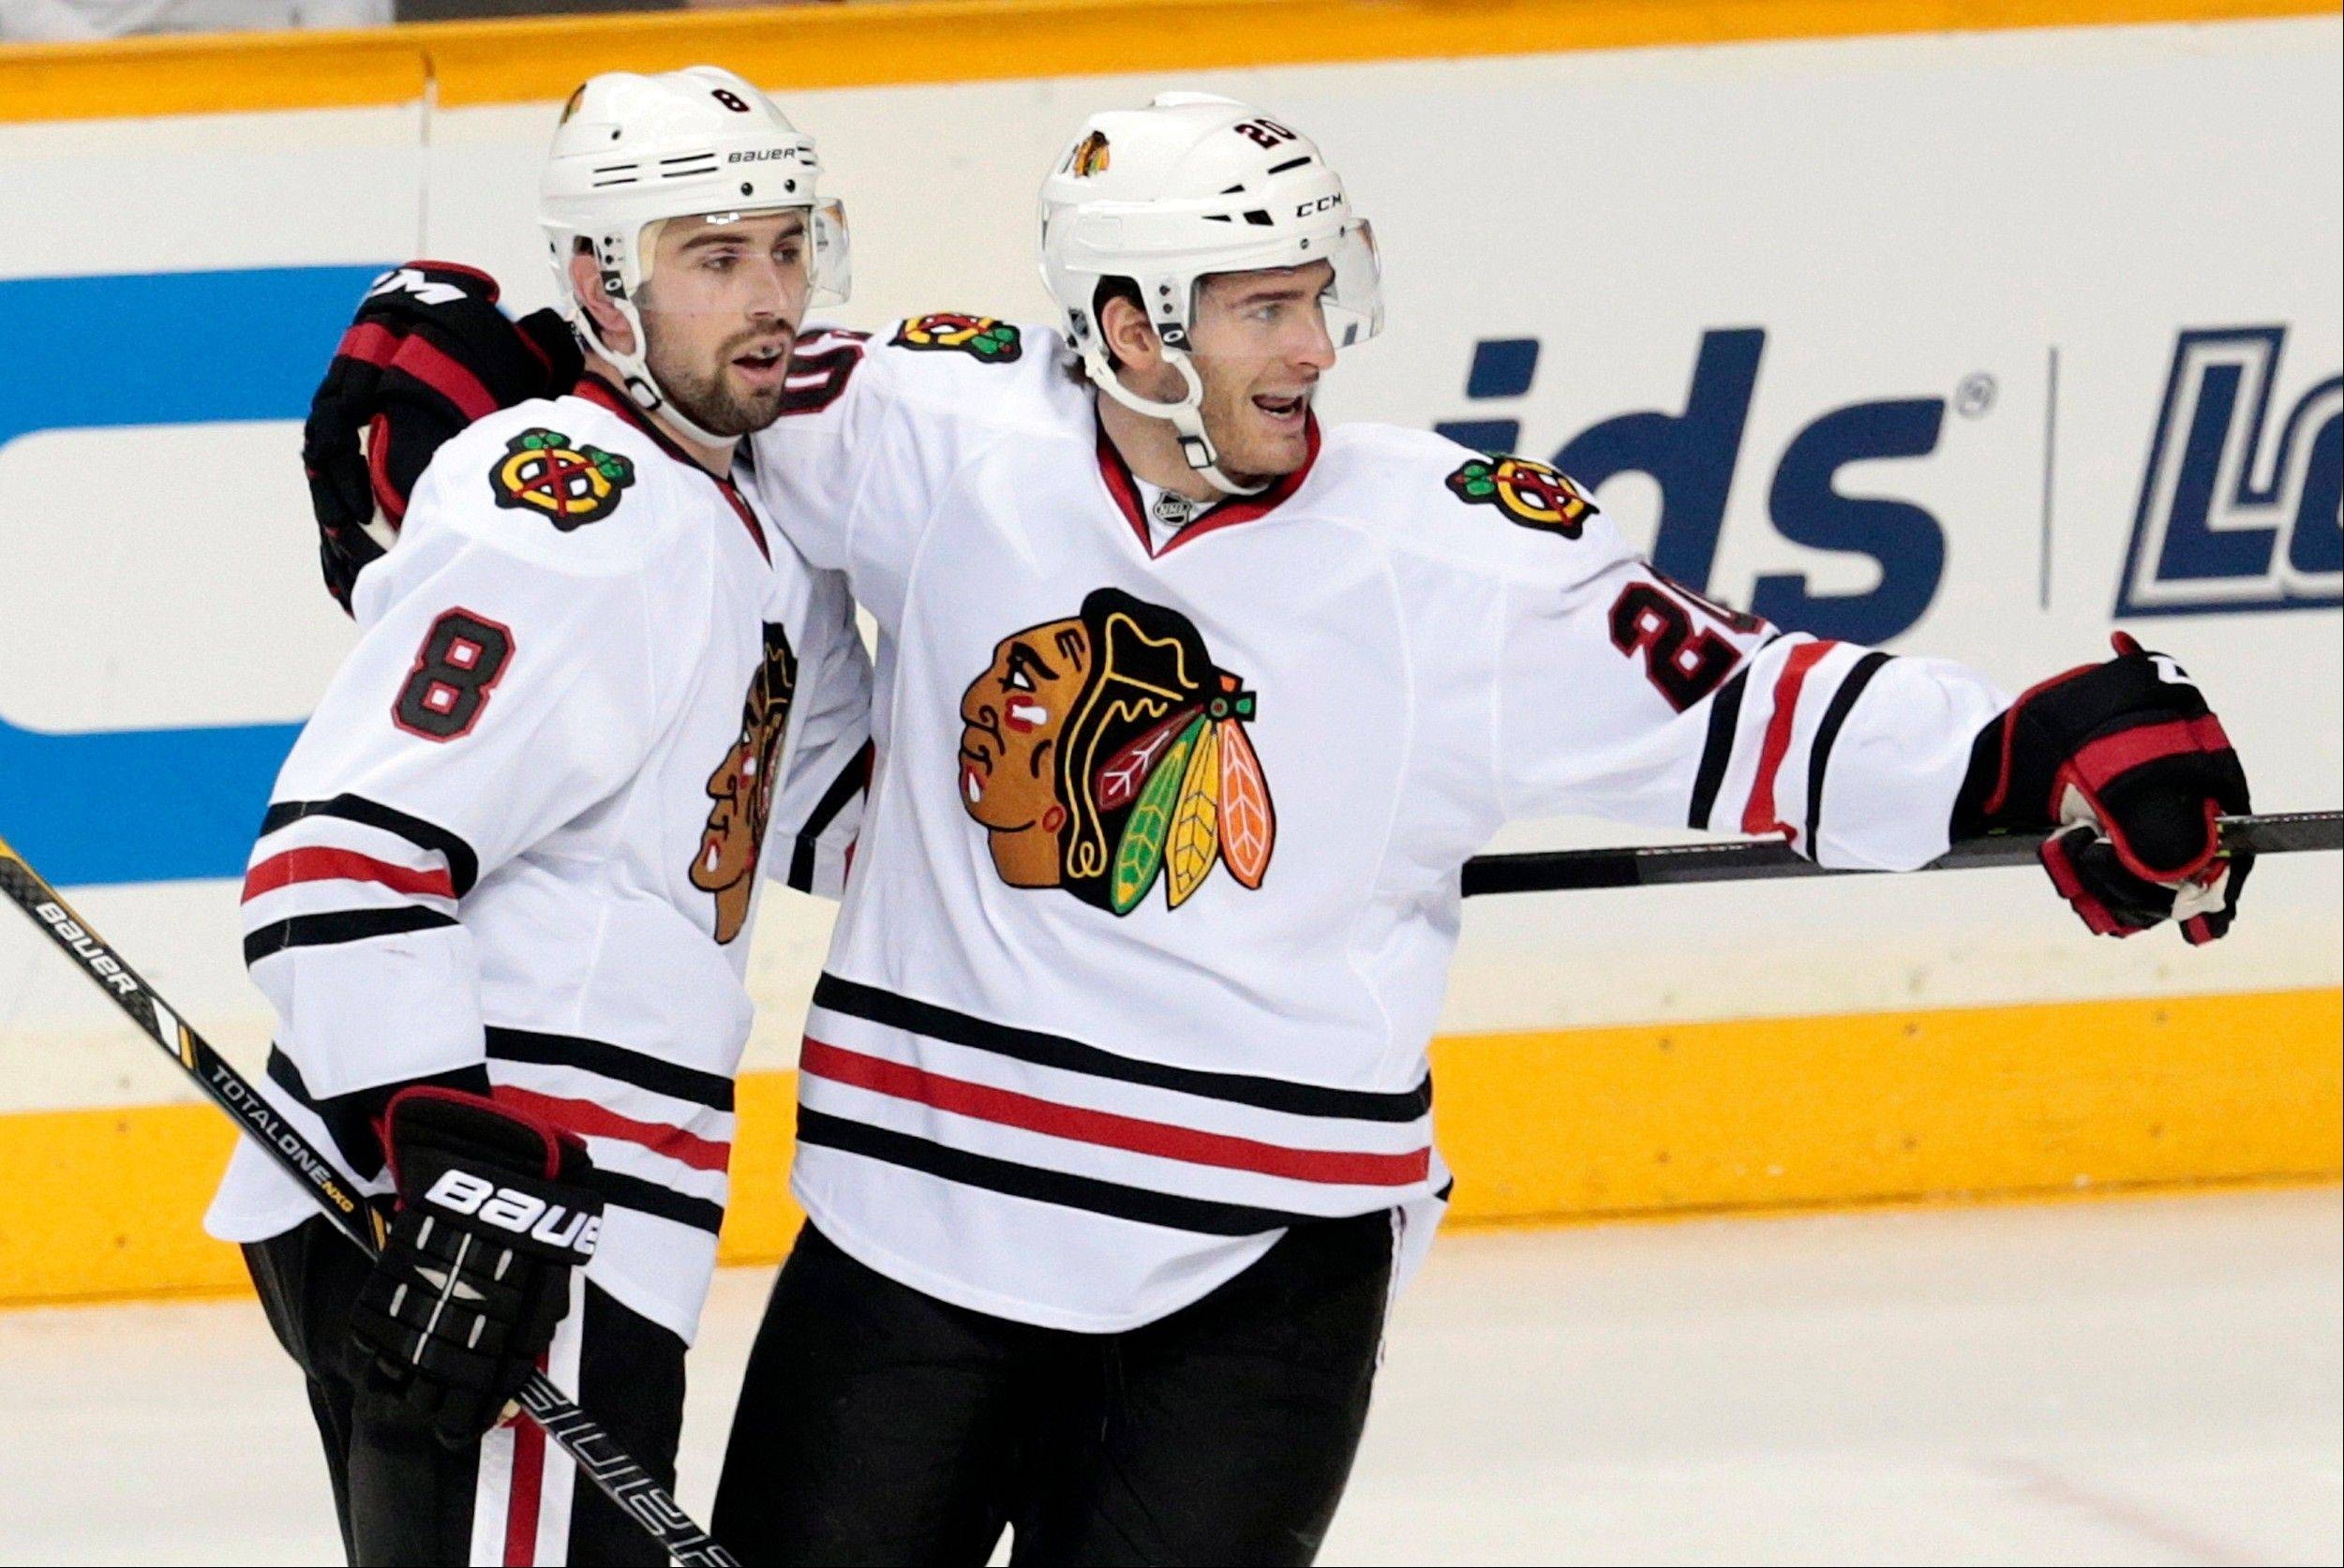 Chicago Blackhawks defenseman Nick Leddy (8) celebrates with Brandon Saad after Leddy scored against the Nashville Predators in the second period of an NHL hockey game Tuesday, Dec. 17, 2013, in Nashville, Tenn. (AP Photo/Mark Humphrey)